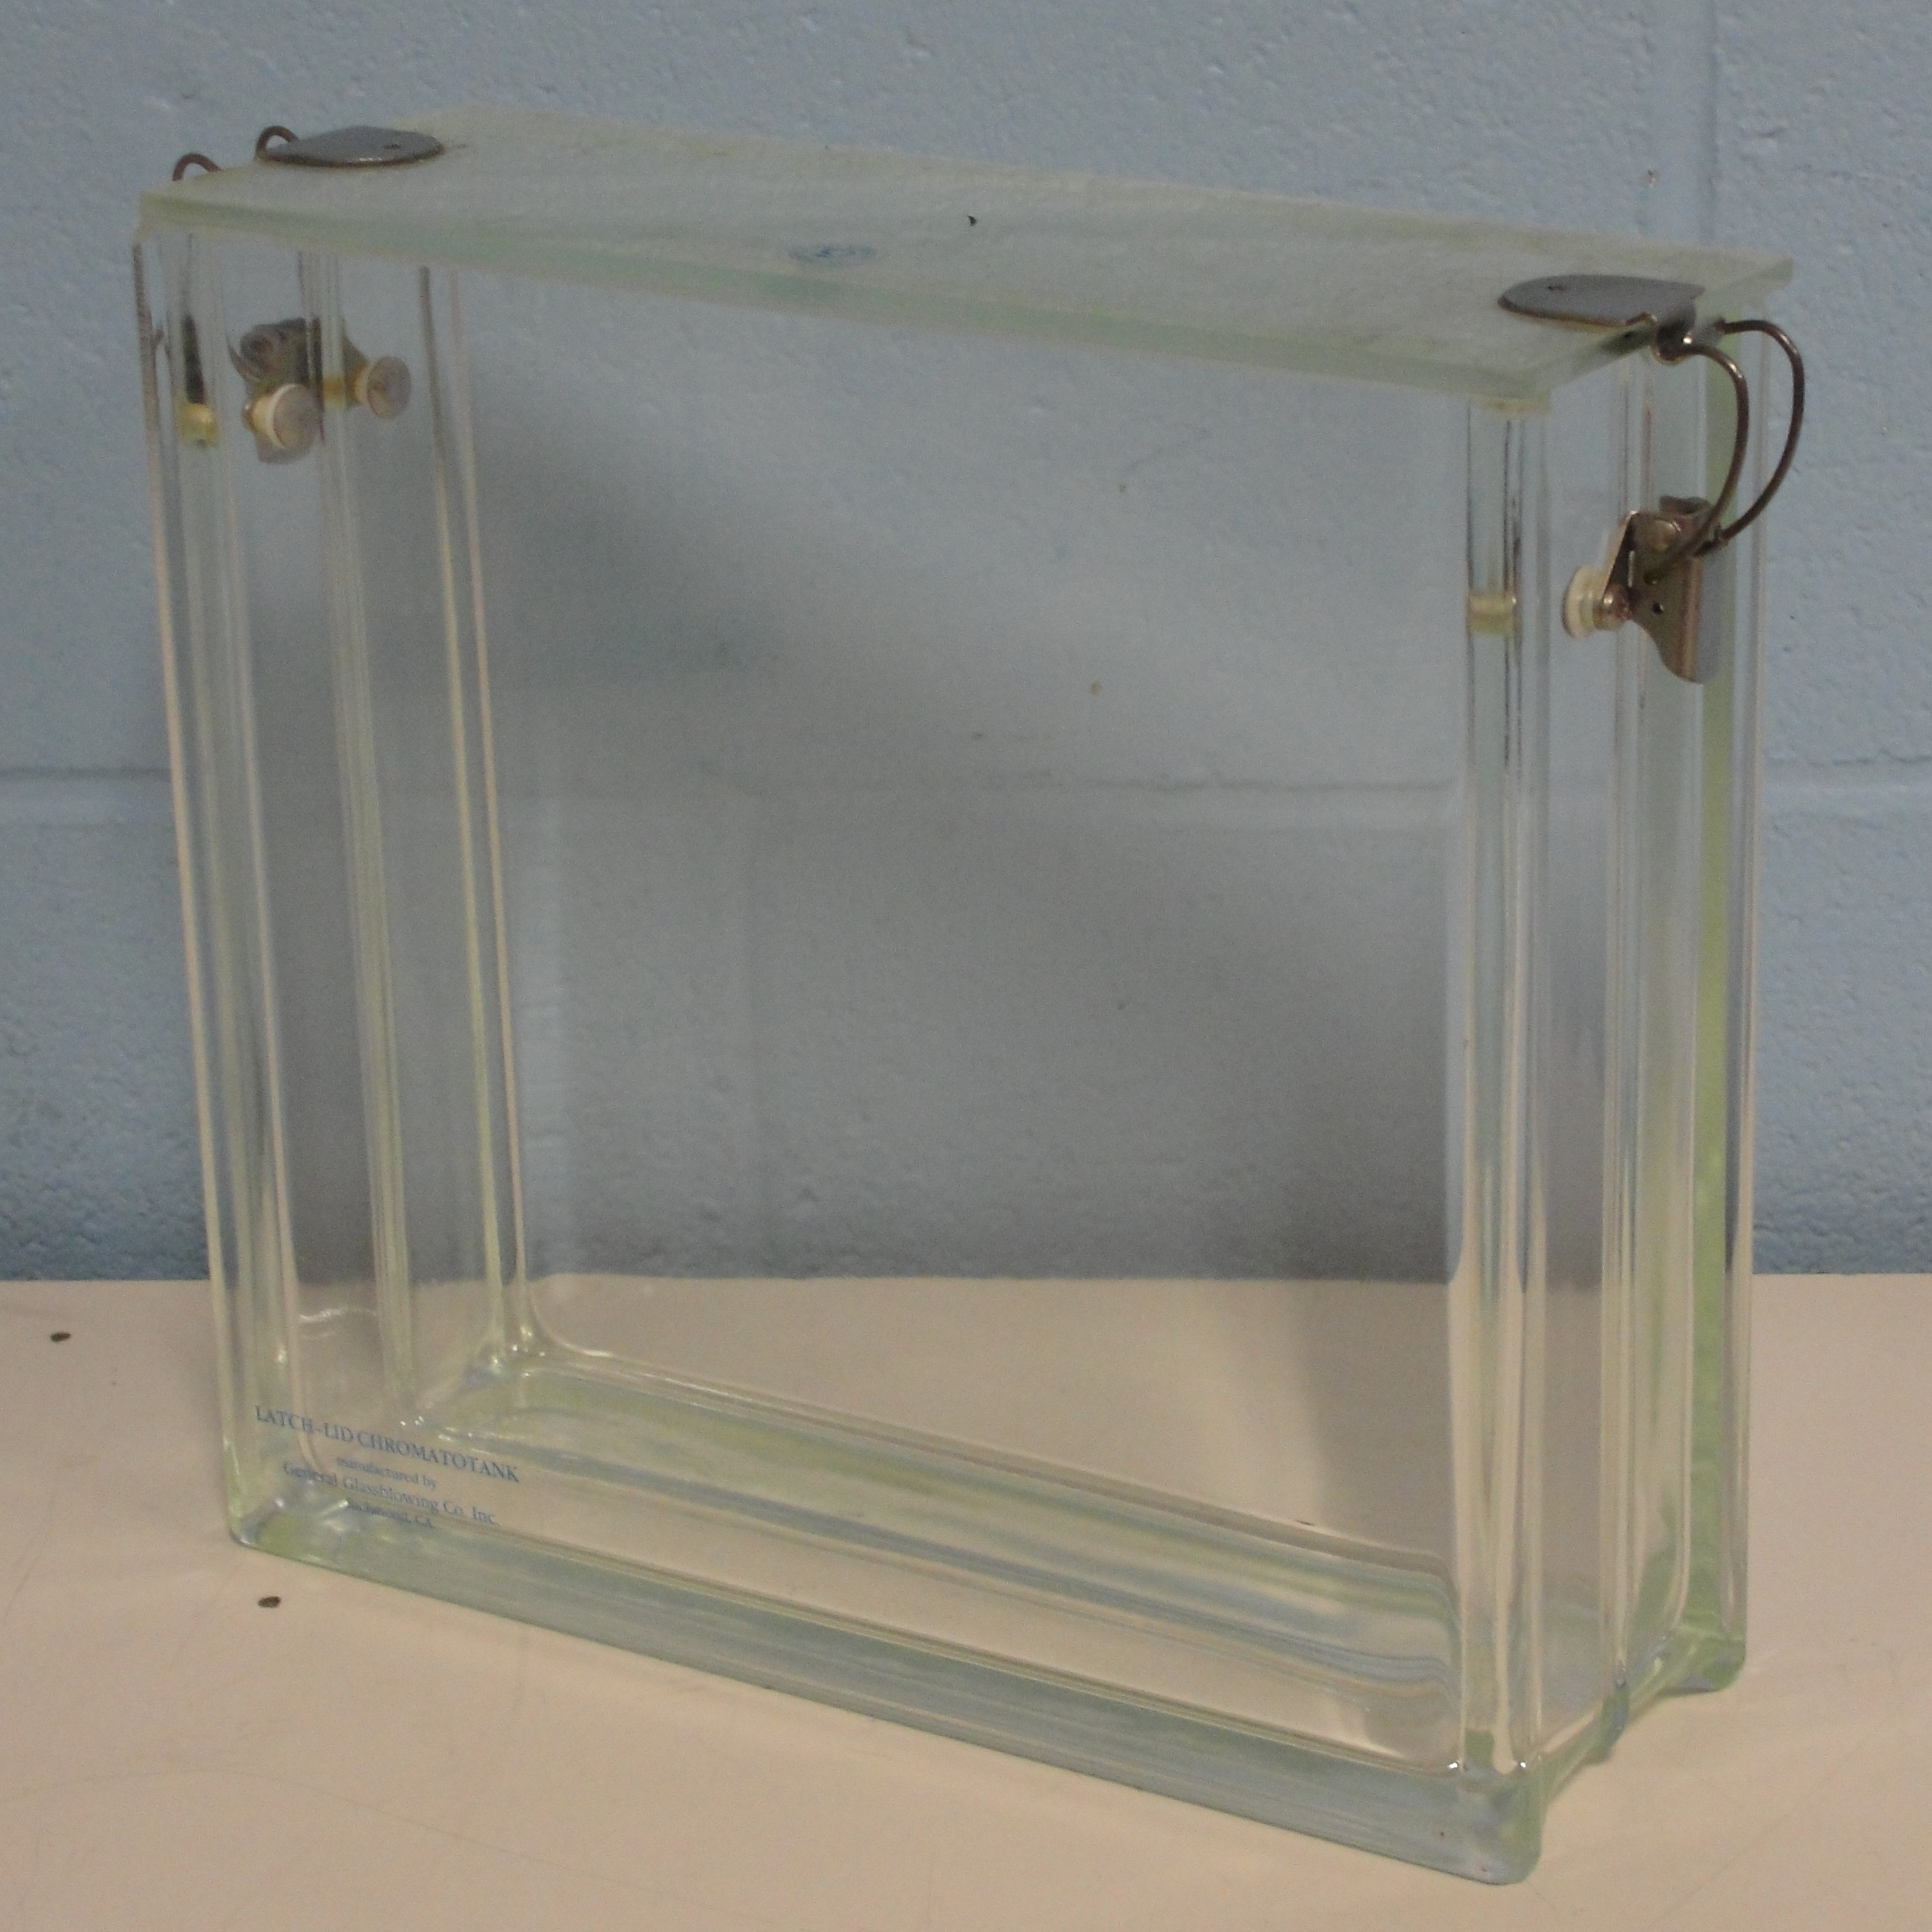 General Glassblowing Co. Latch-Lid ChromatoTank Unit Image